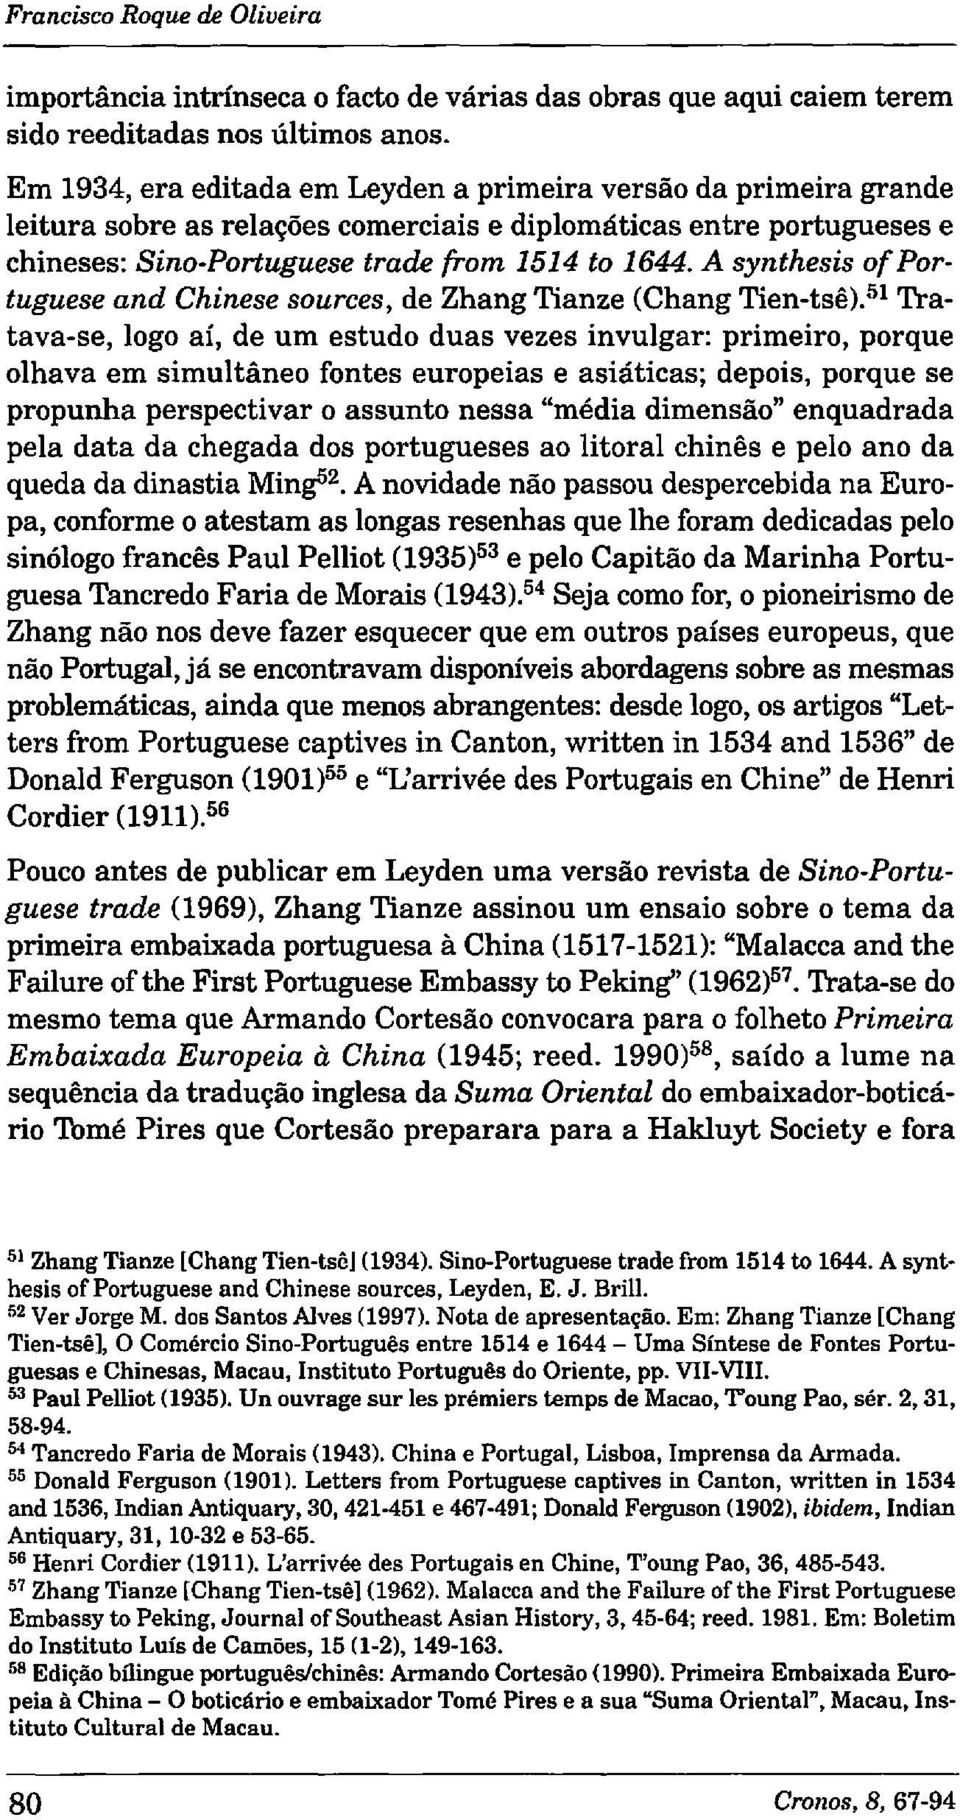 A synthesis of Portuguese and Chinese sources, de Zhang Tianze (Chang Tien-tse).